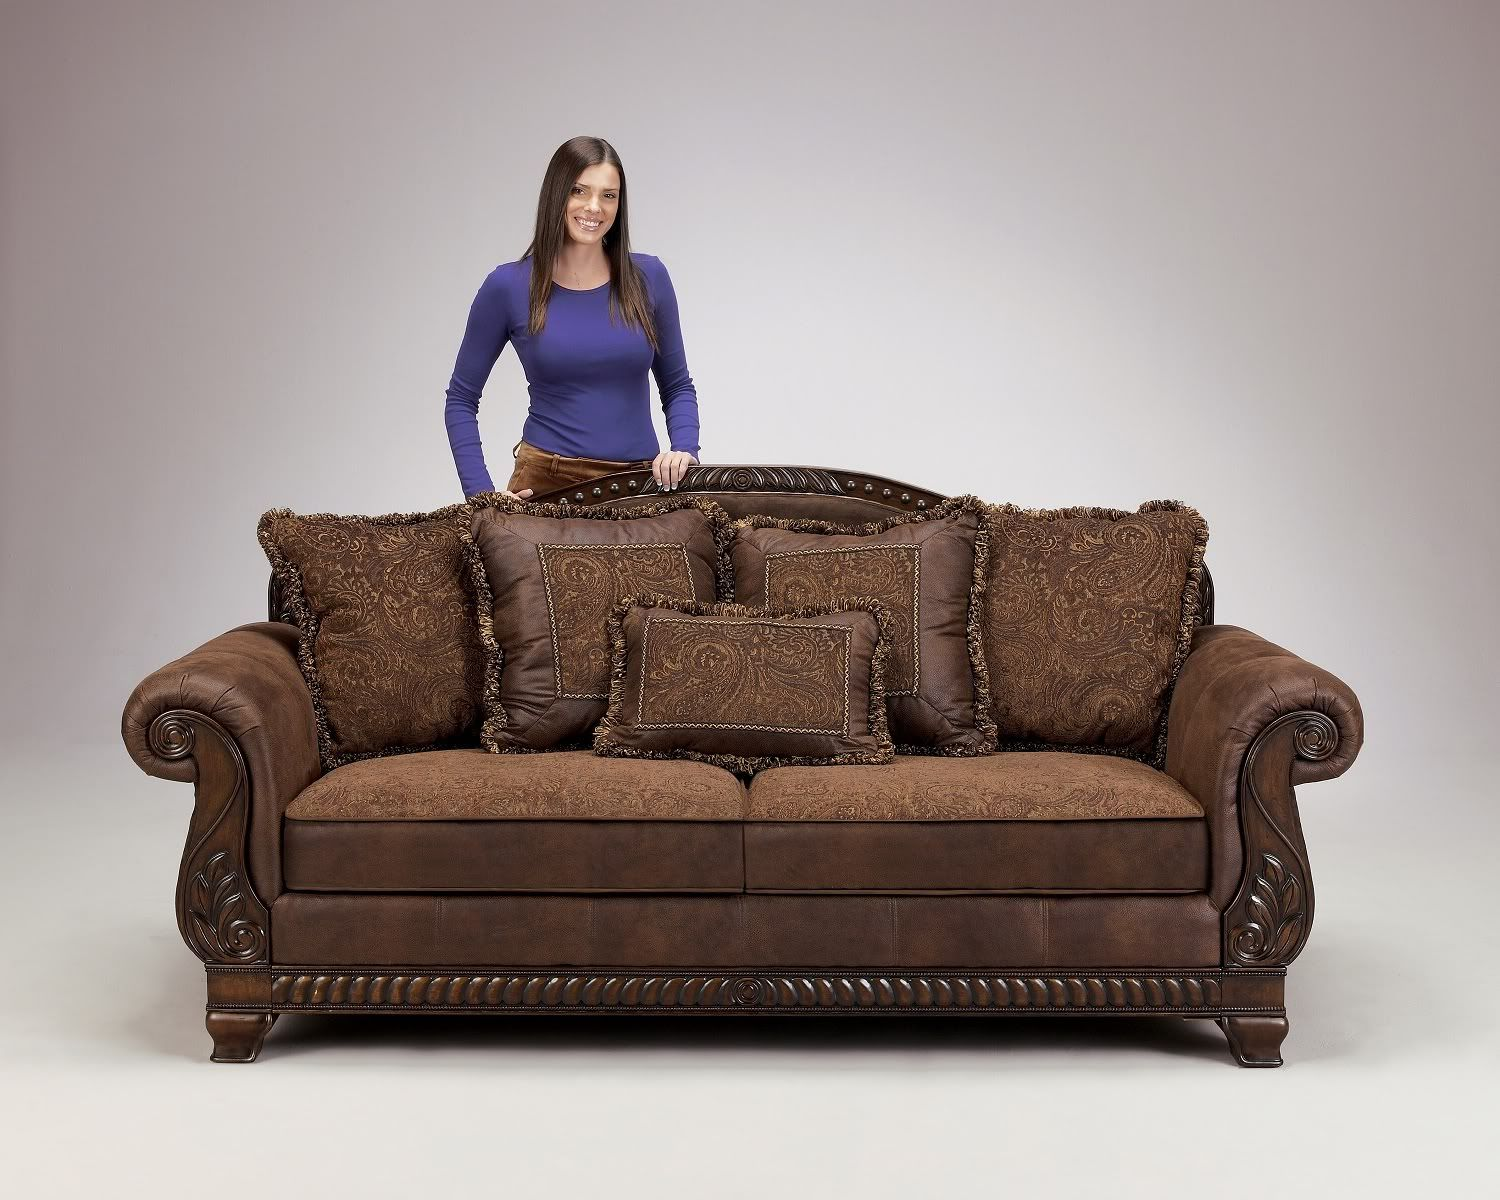 s sofa set sectional under 2000 truffle traditional old world couch wood trim